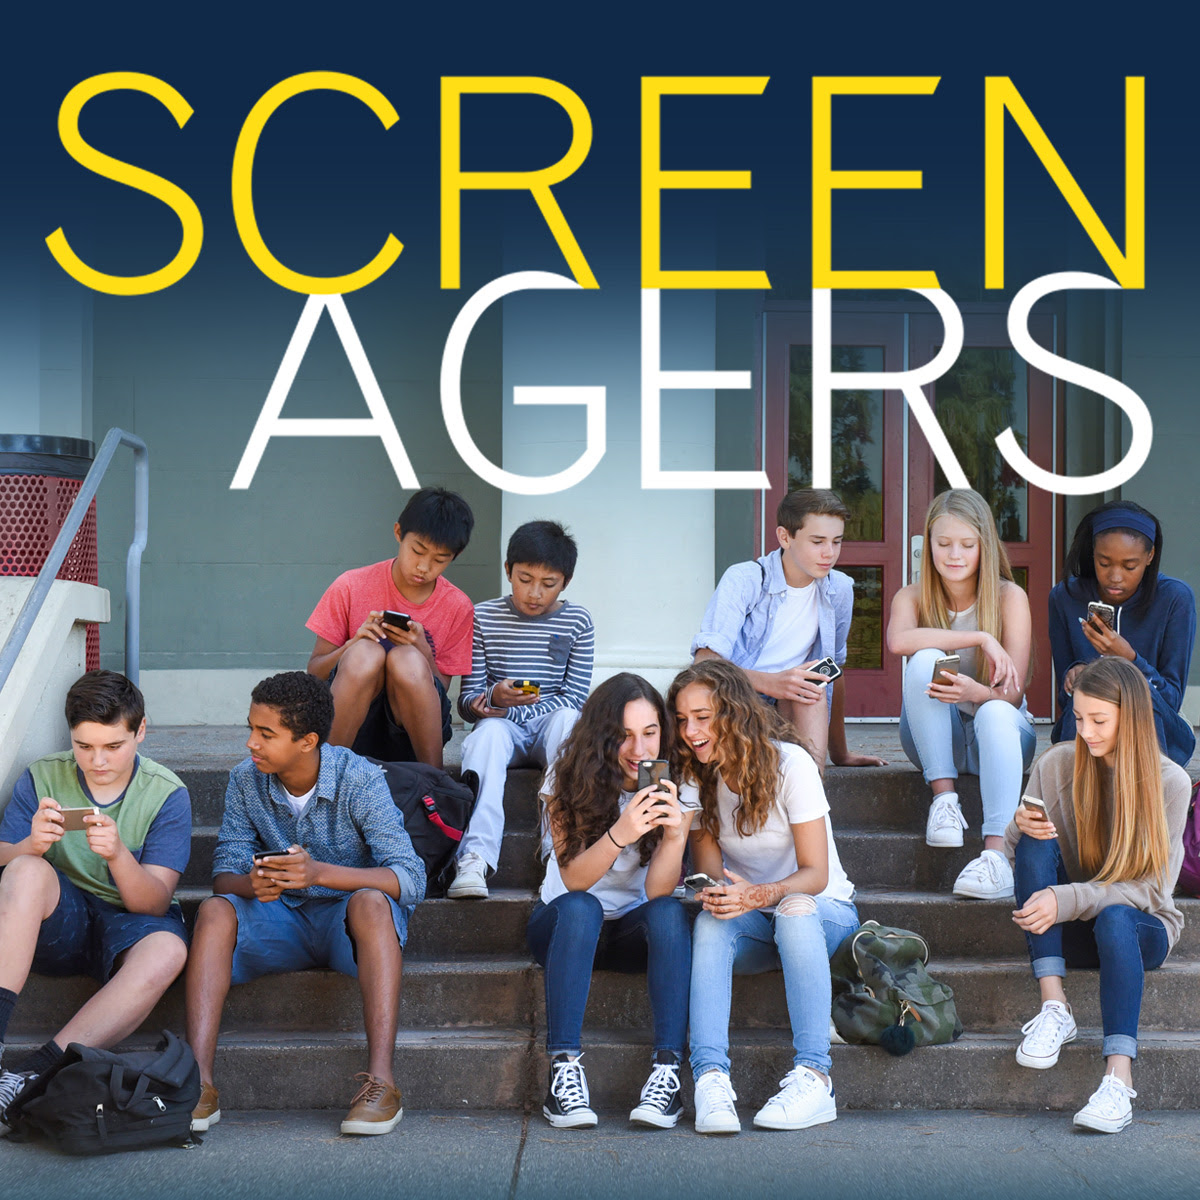 Screenagers Film Presented By York City School District